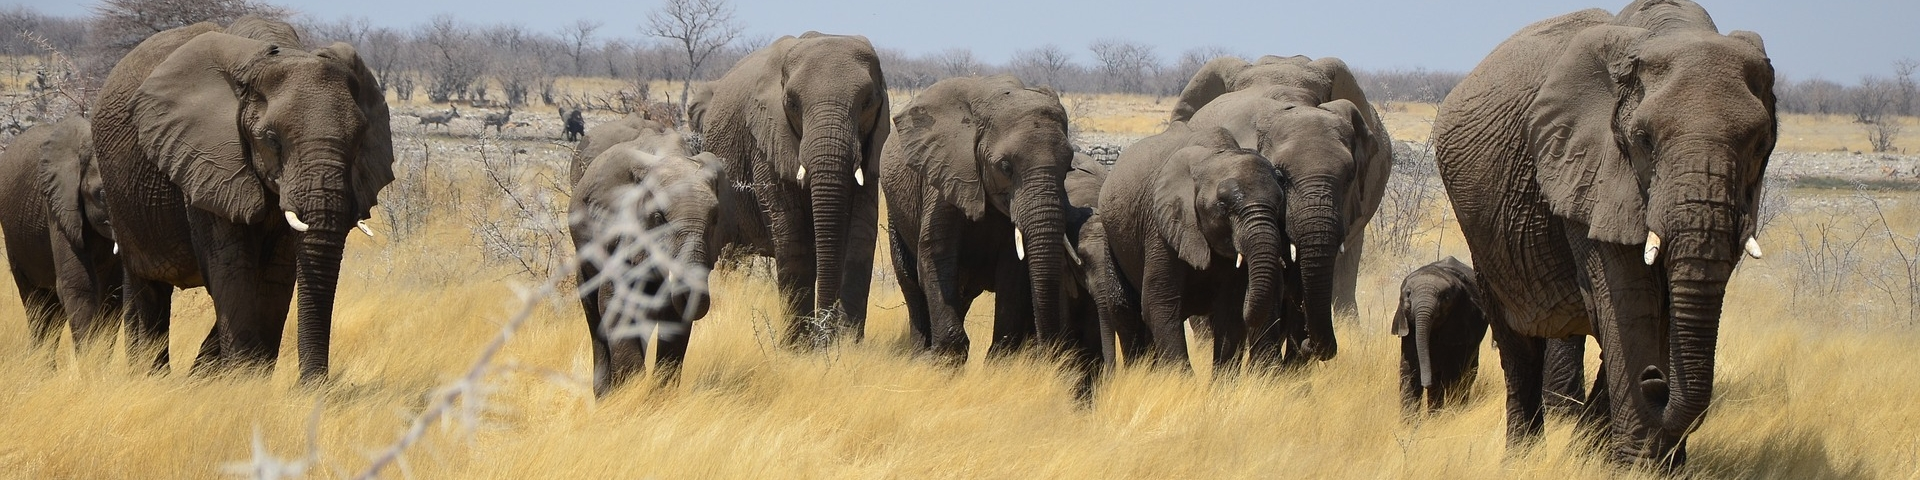 Elephants-in-Namibia